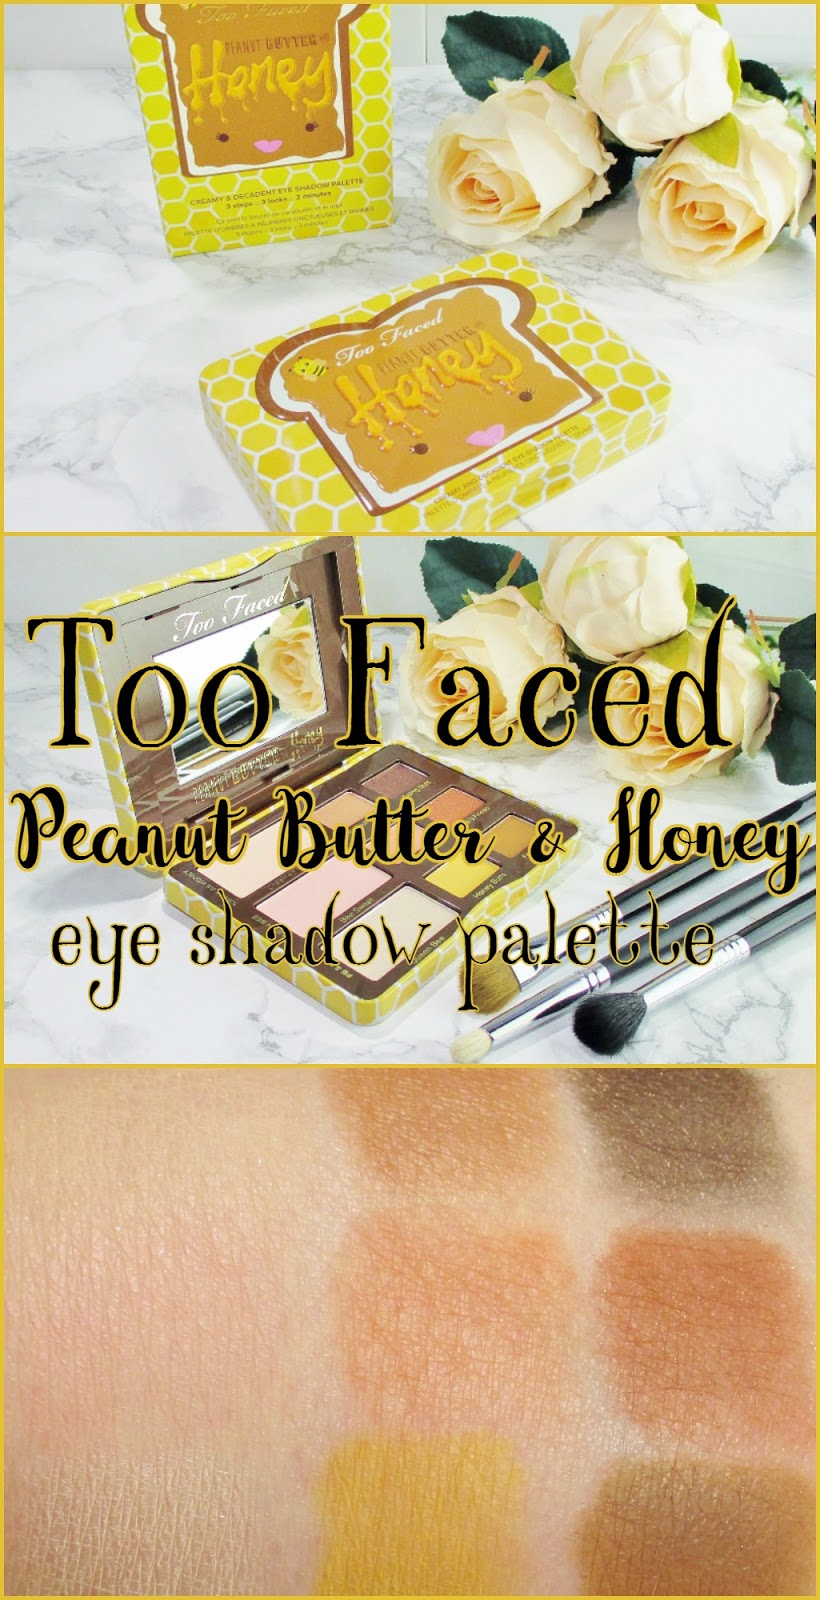 too-faced-peanut-butter-and-honey-eye-shadow-palette--